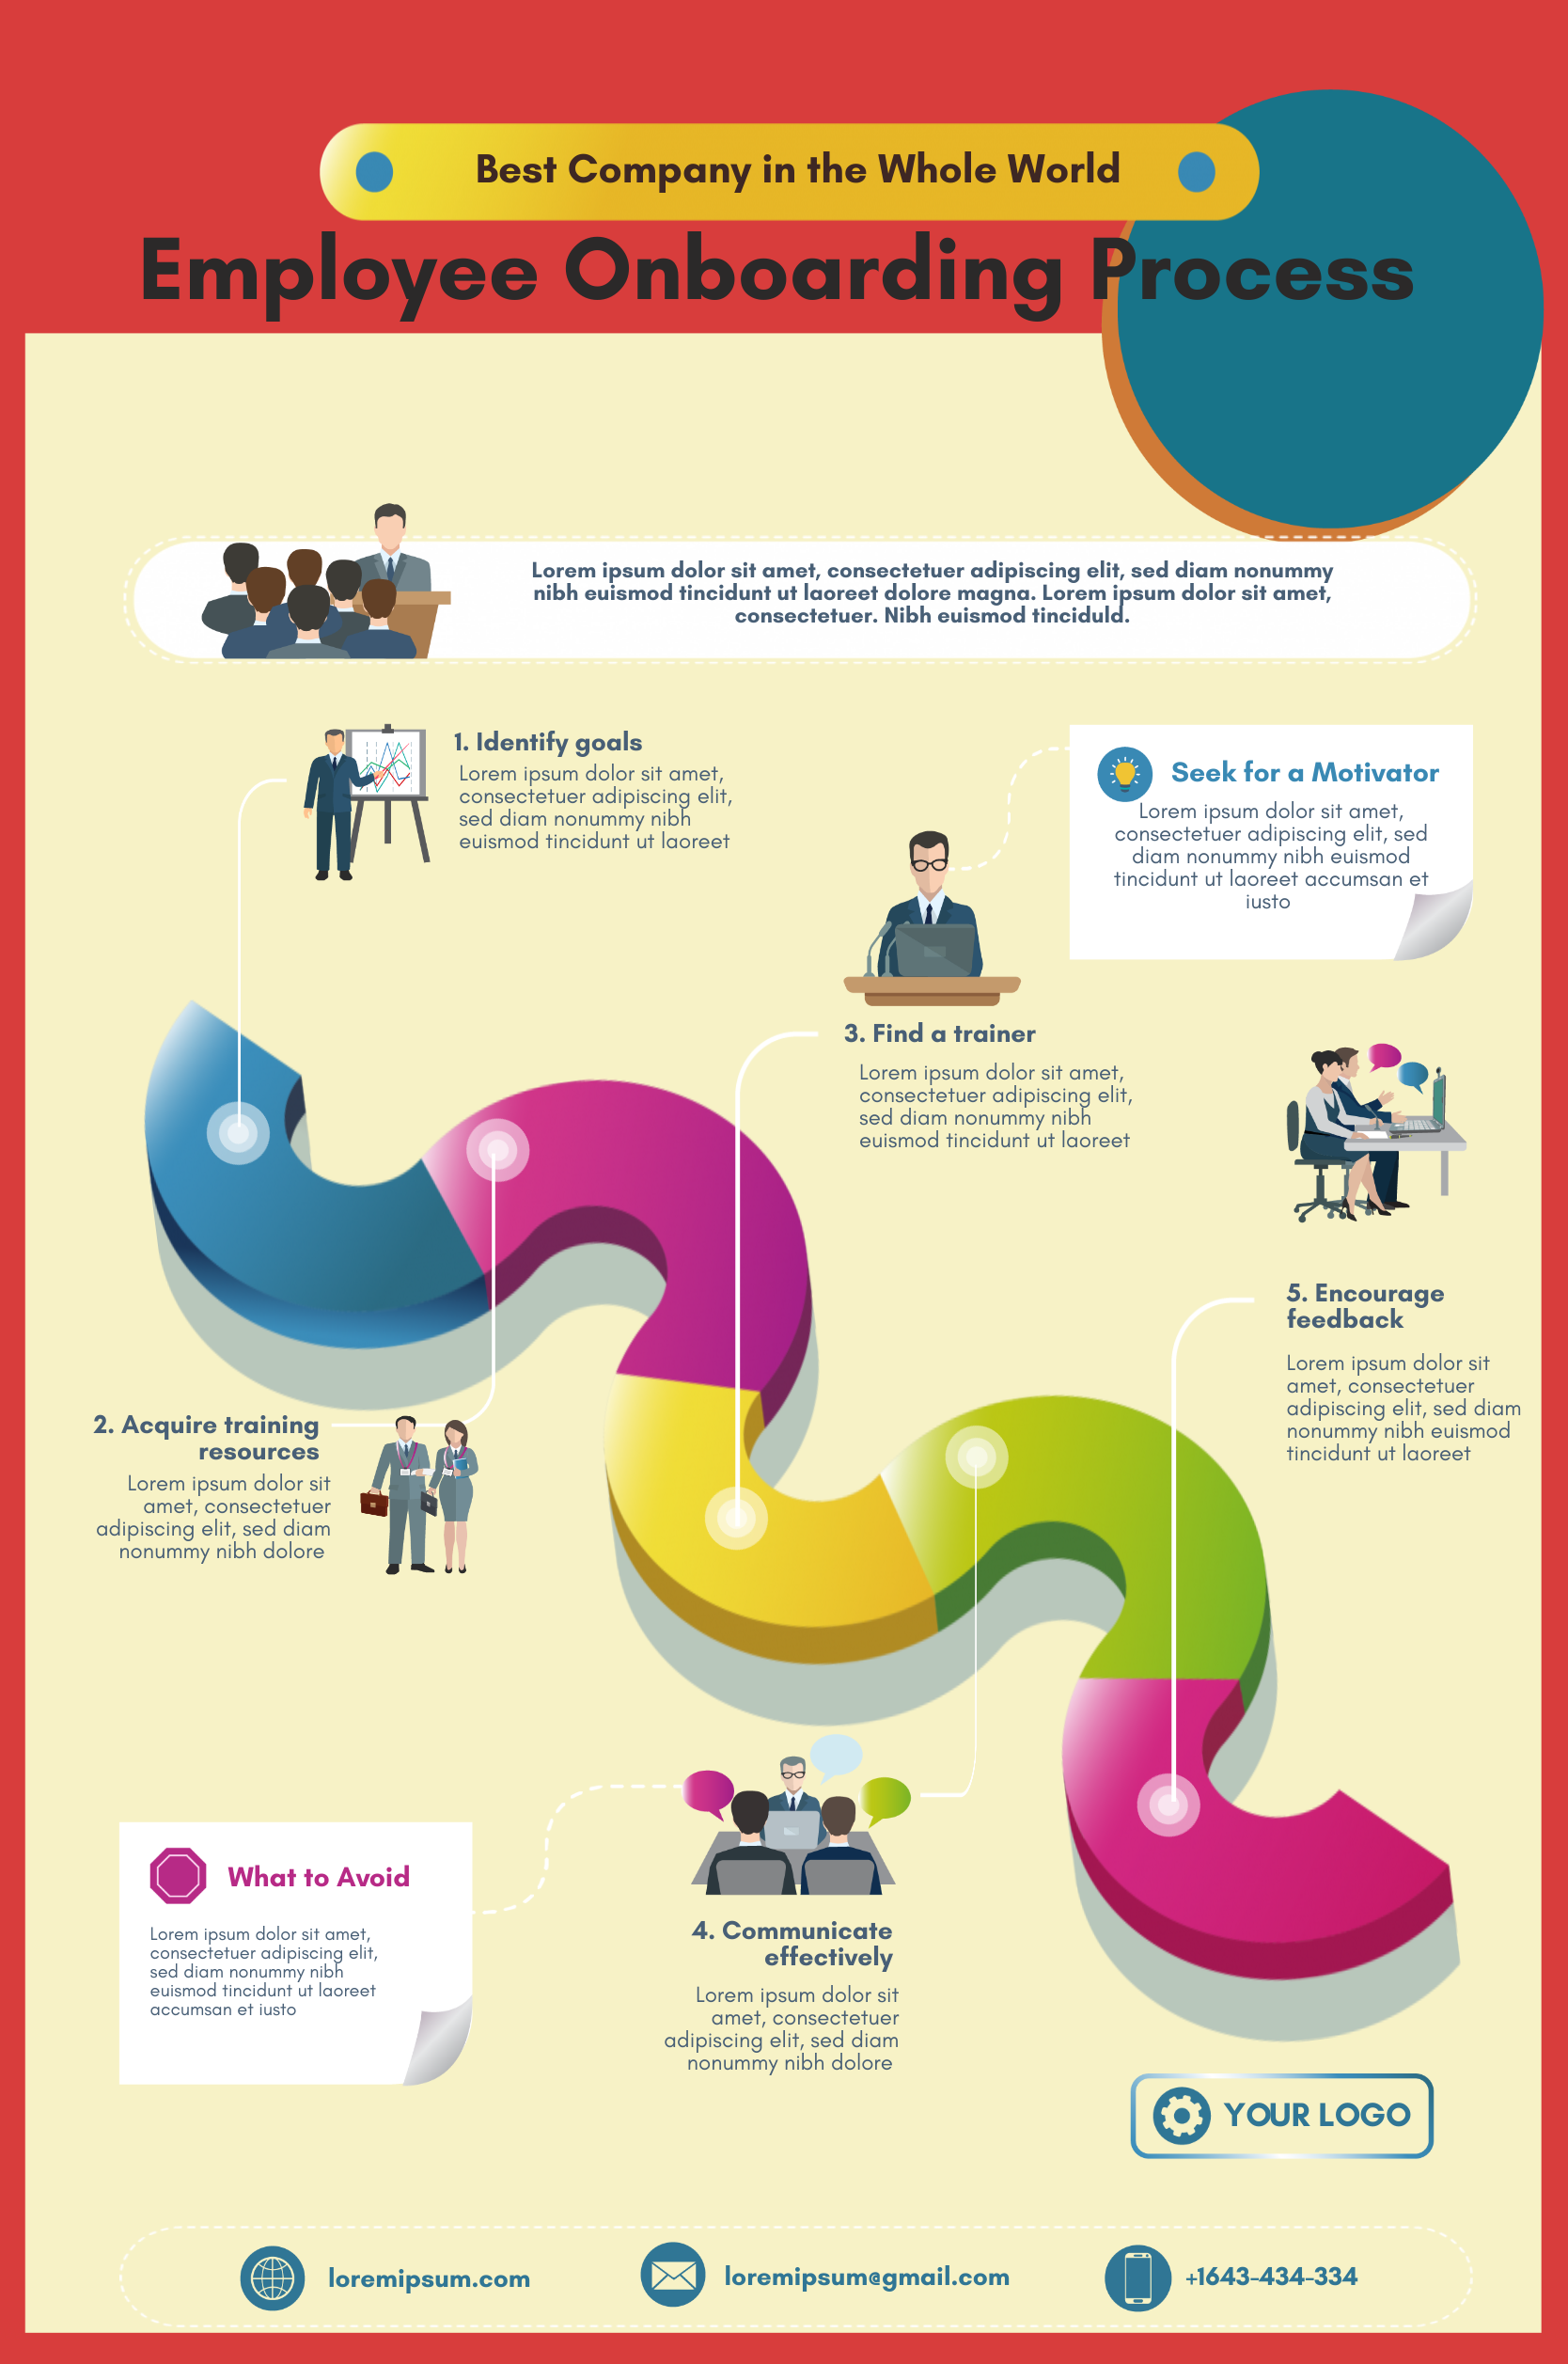 an infographic about the employee onboarding process